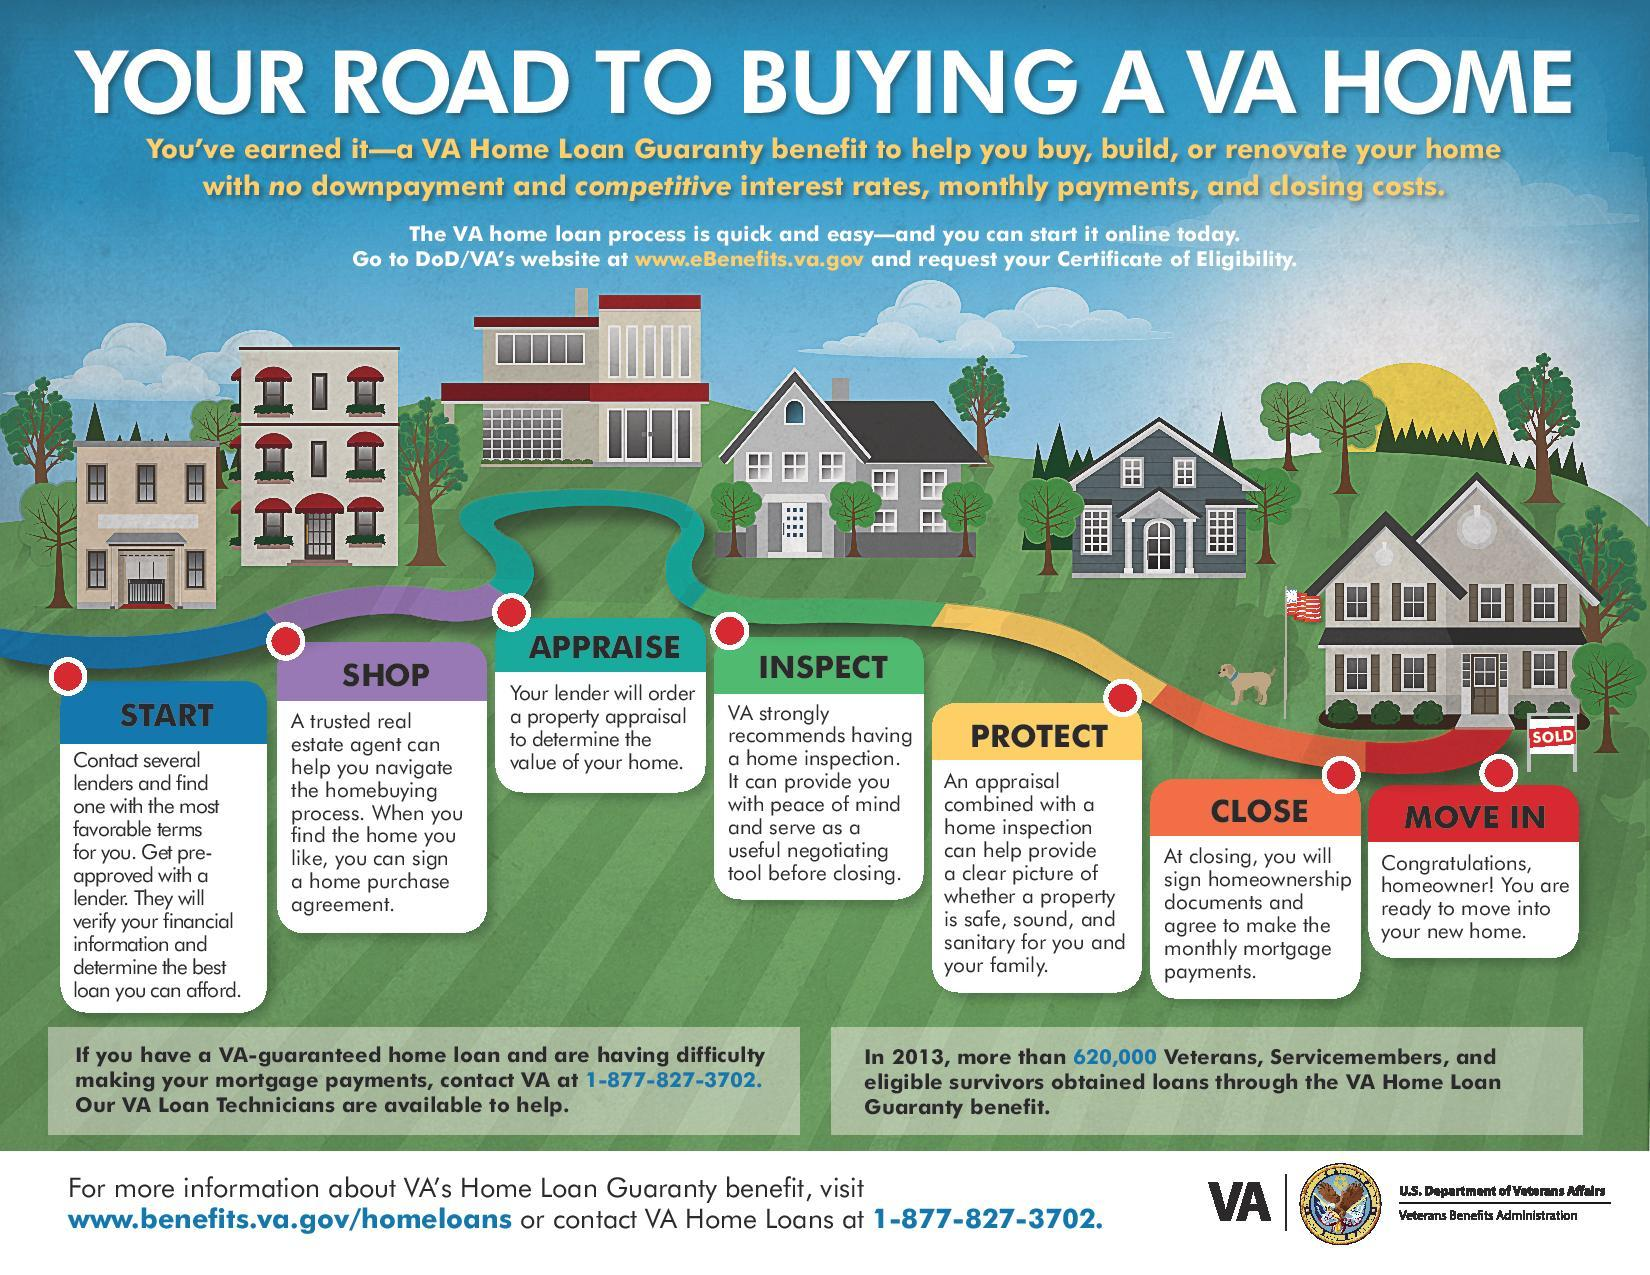 Roadmap to buying a home with a VA home loan